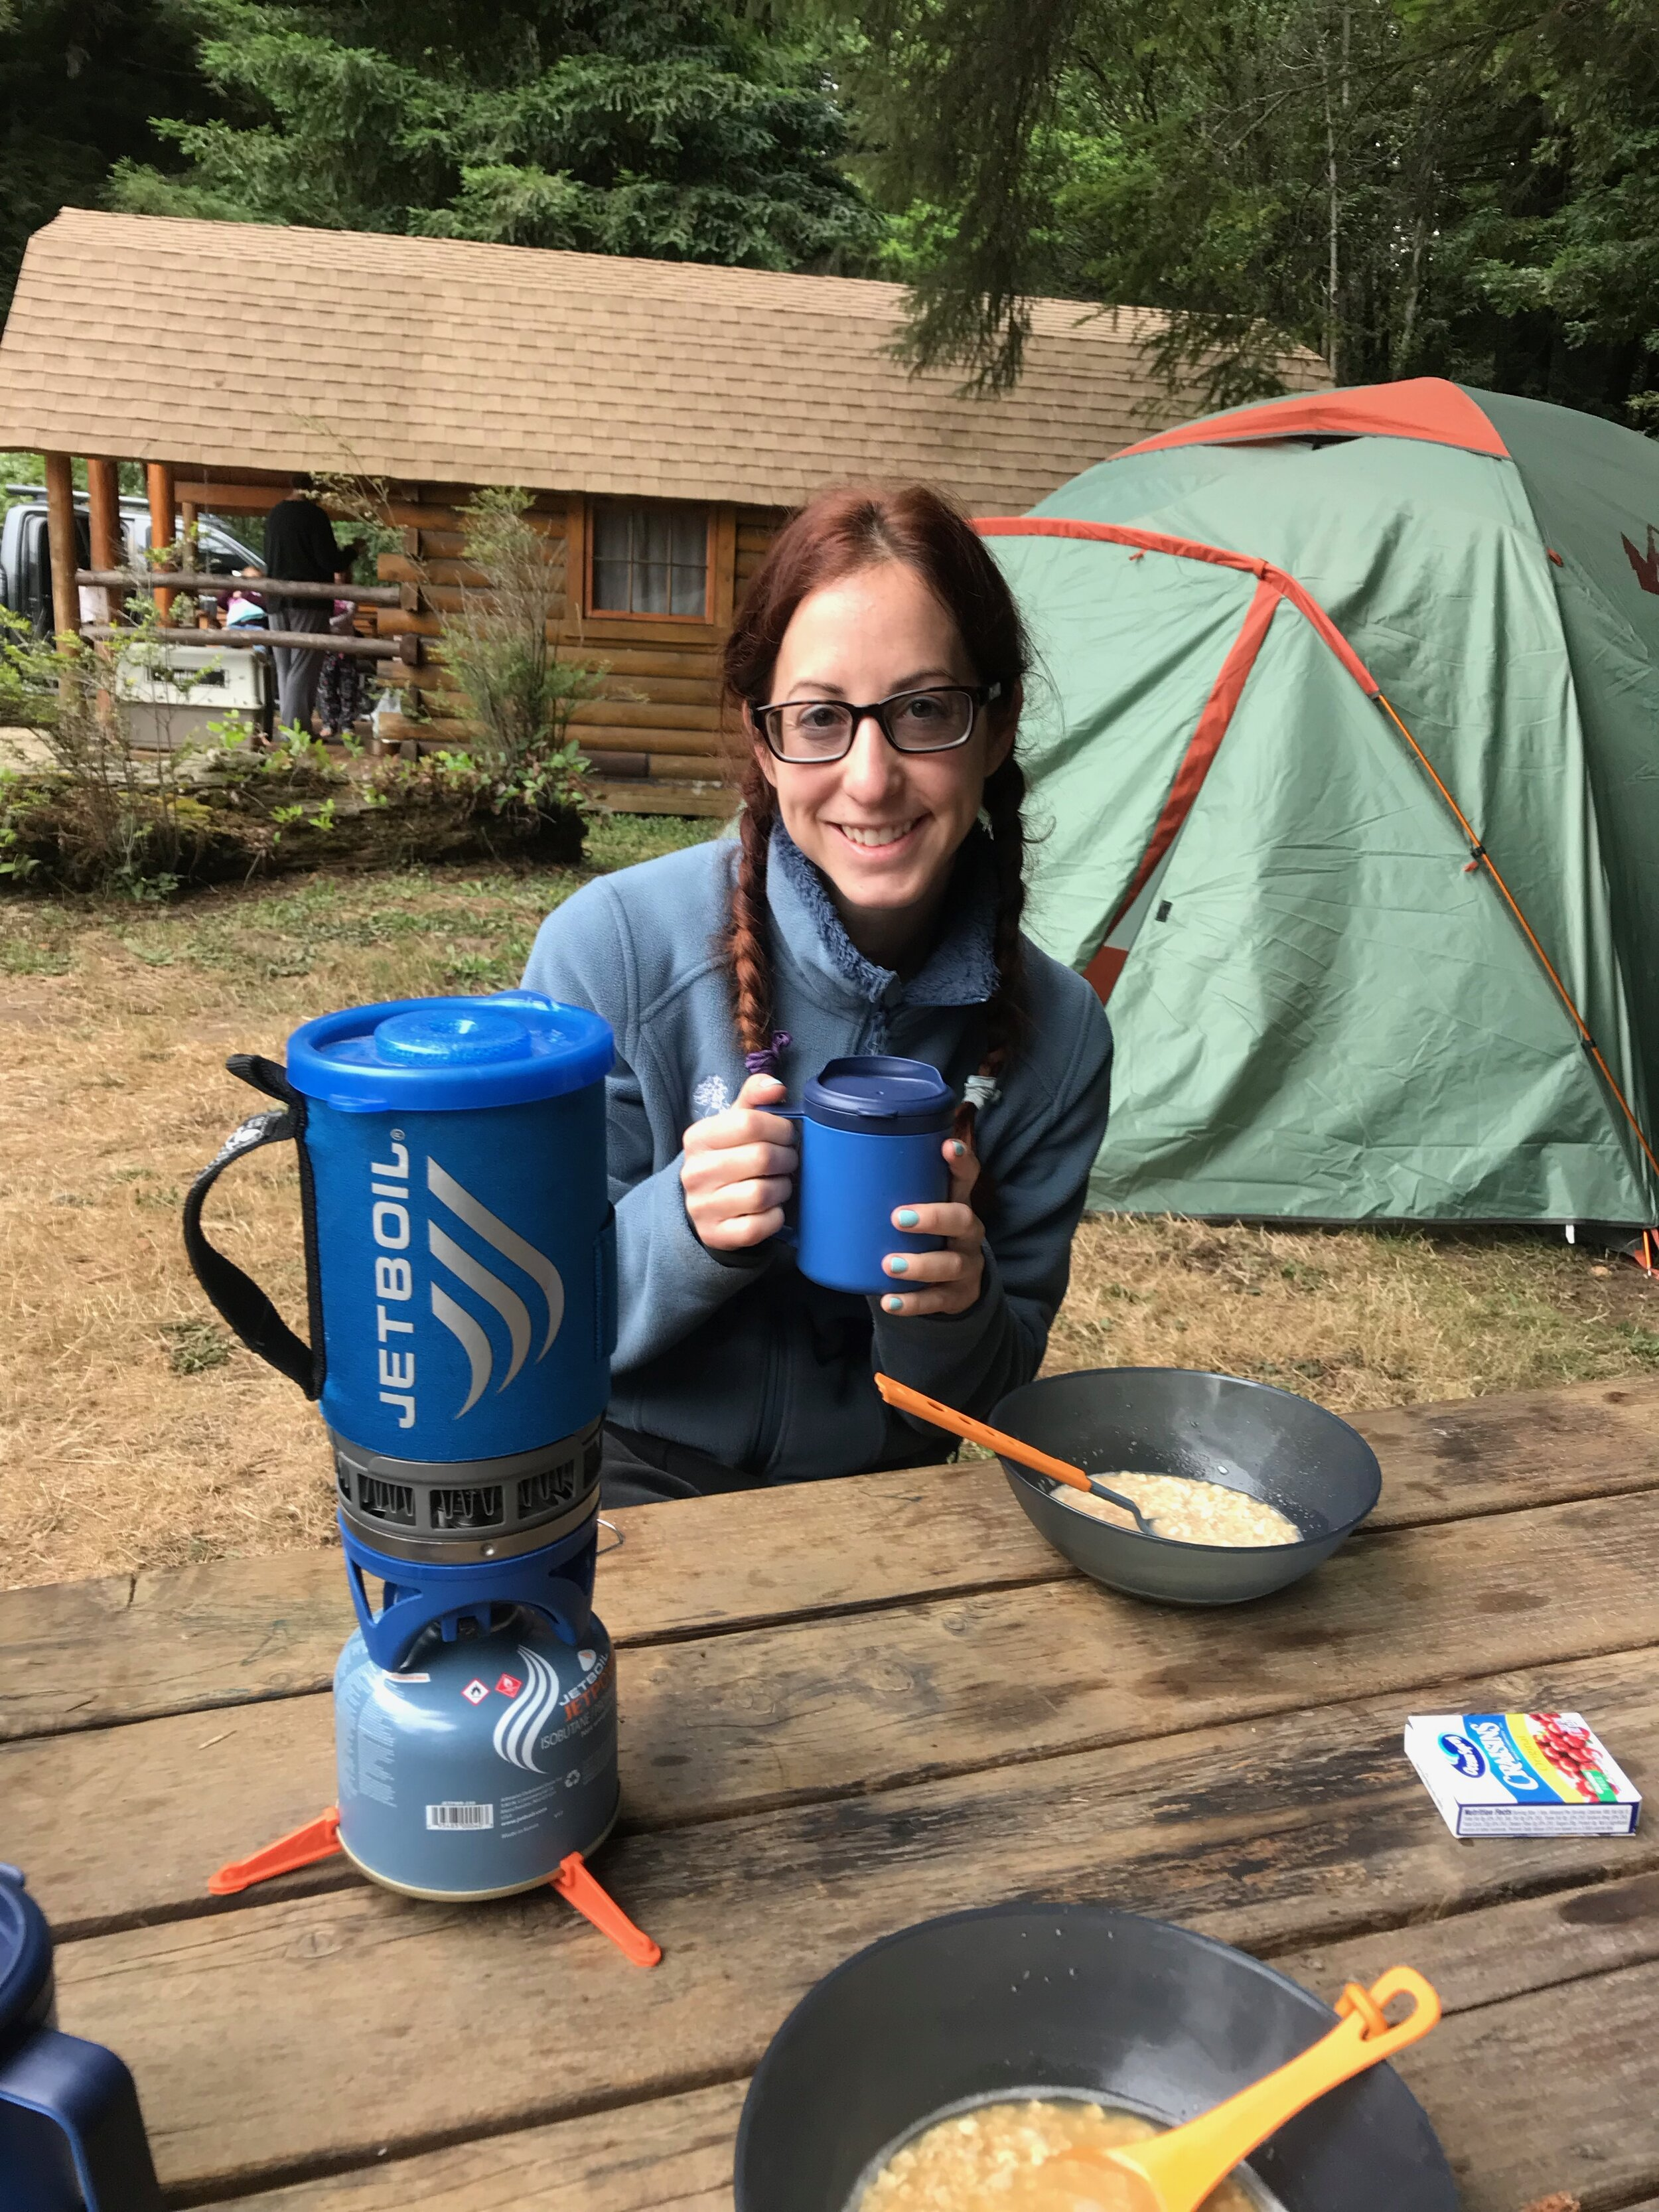 Coffee, oatmeal, and camping.